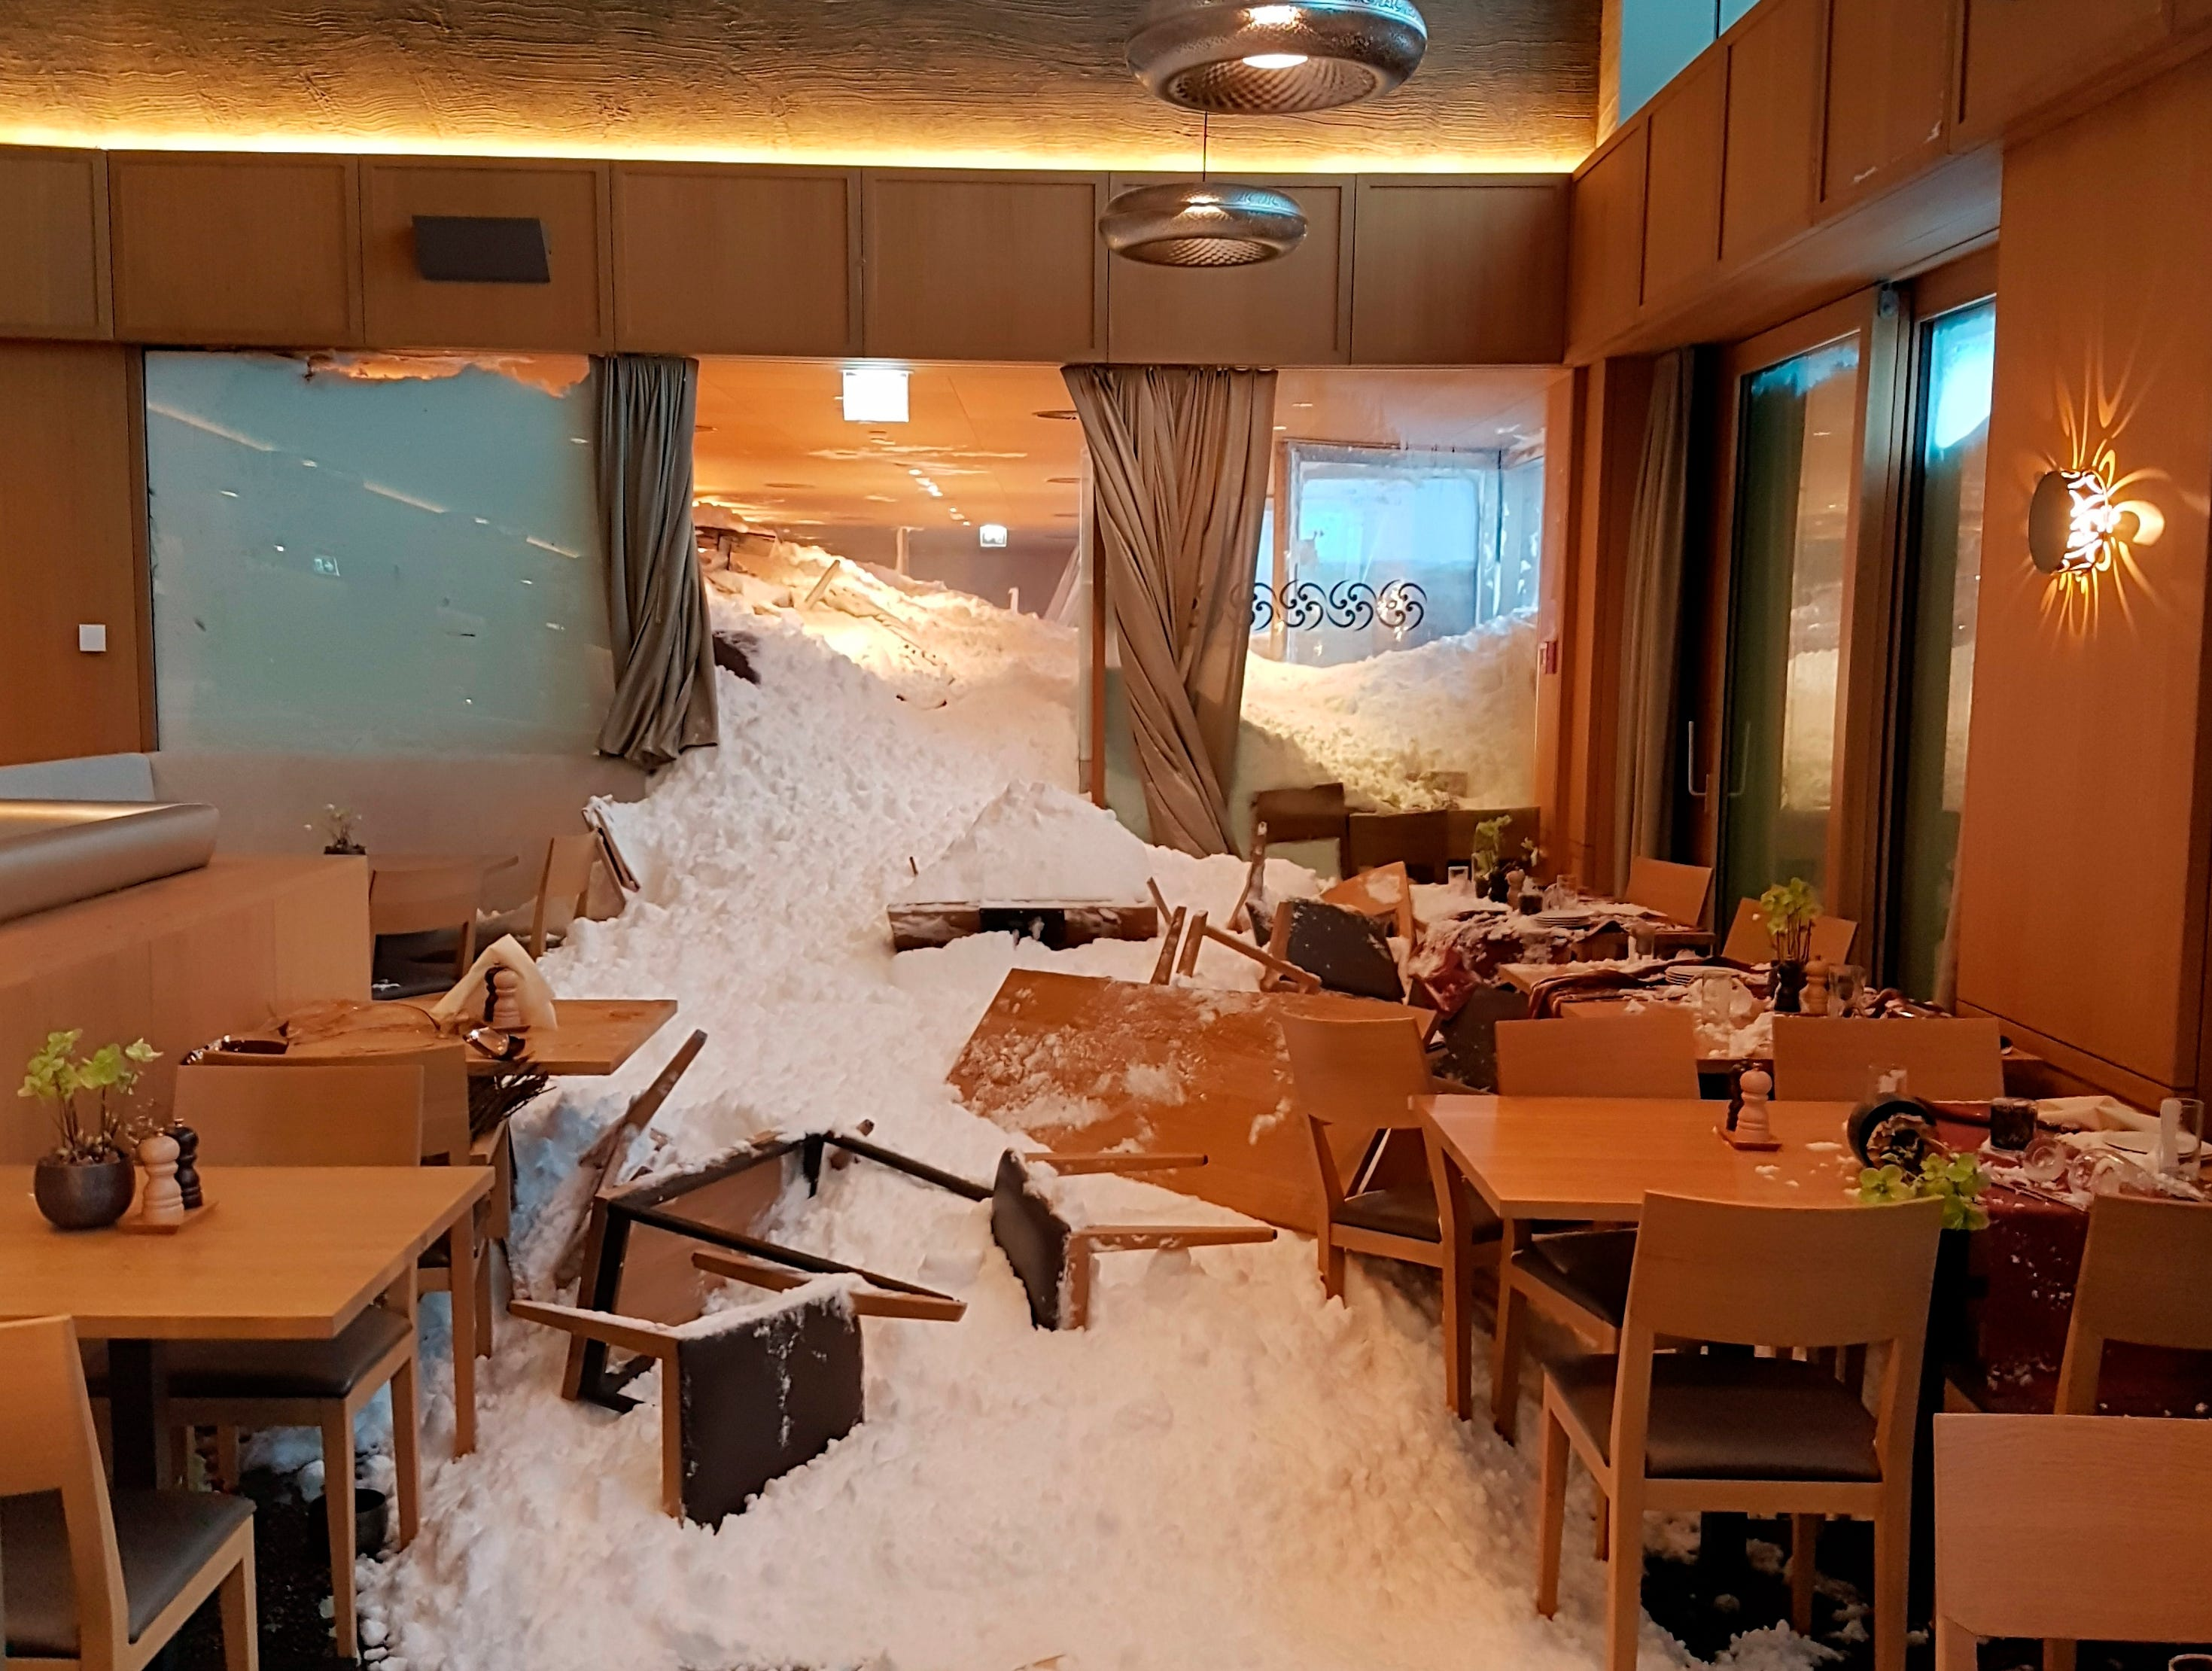 Snow enters the inside of the Hotel Saentis on the Schwaegalp, Switzerland, Thursday Jan. 10, 2019, after an avalanche. Police said three people were slightly hurt when the avalanche hit the hotel at Schwaegalp on Thursday afternoon.